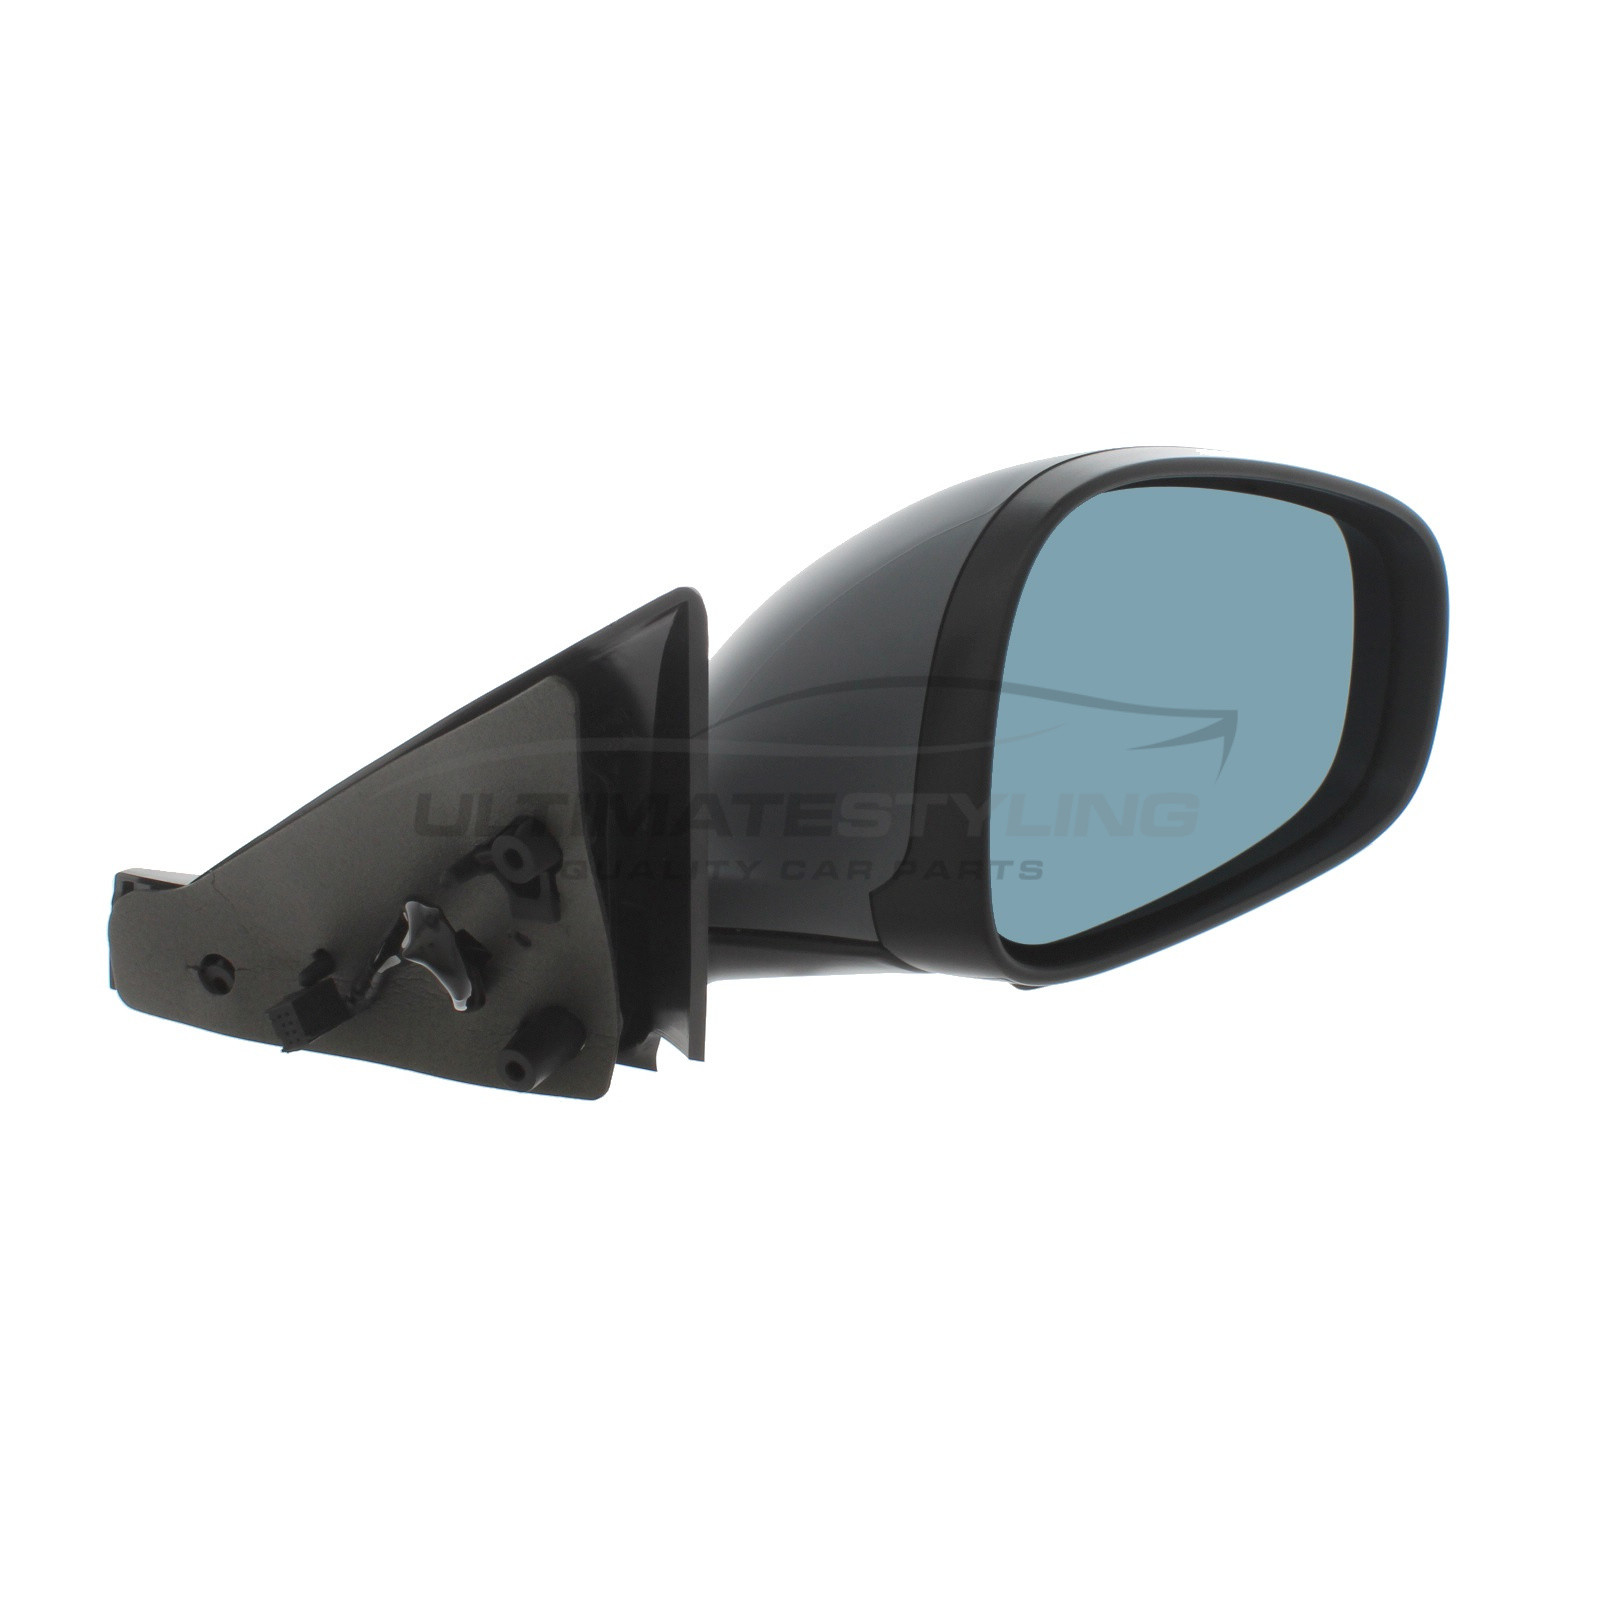 Alfa Romeo MiTo Wing Mirror / Door Mirror - Drivers Side (RH) - Electric adjustment - Heated Glass - Primed